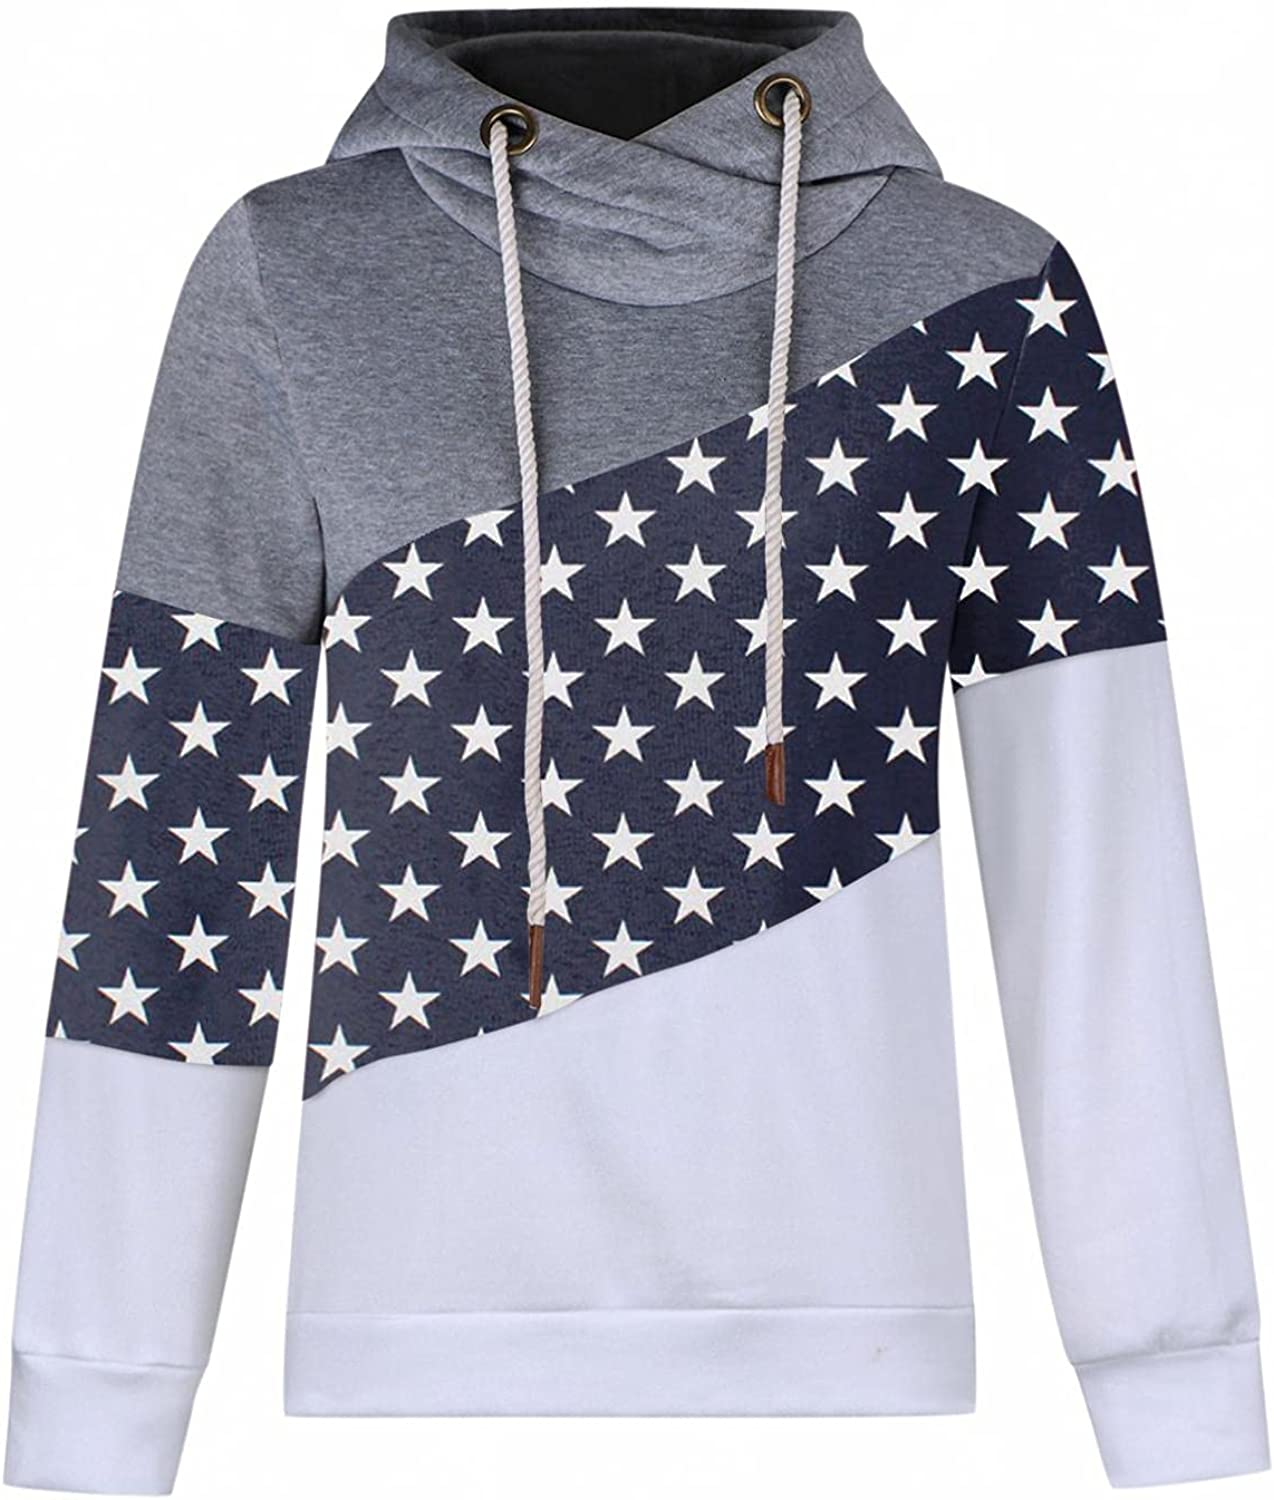 Hotkey Hoodie for Women, Womens Fashion Sweatshirt Turtleneck Long Sleeve Tops Stars Print Casual Hooded Pullover with Pocket